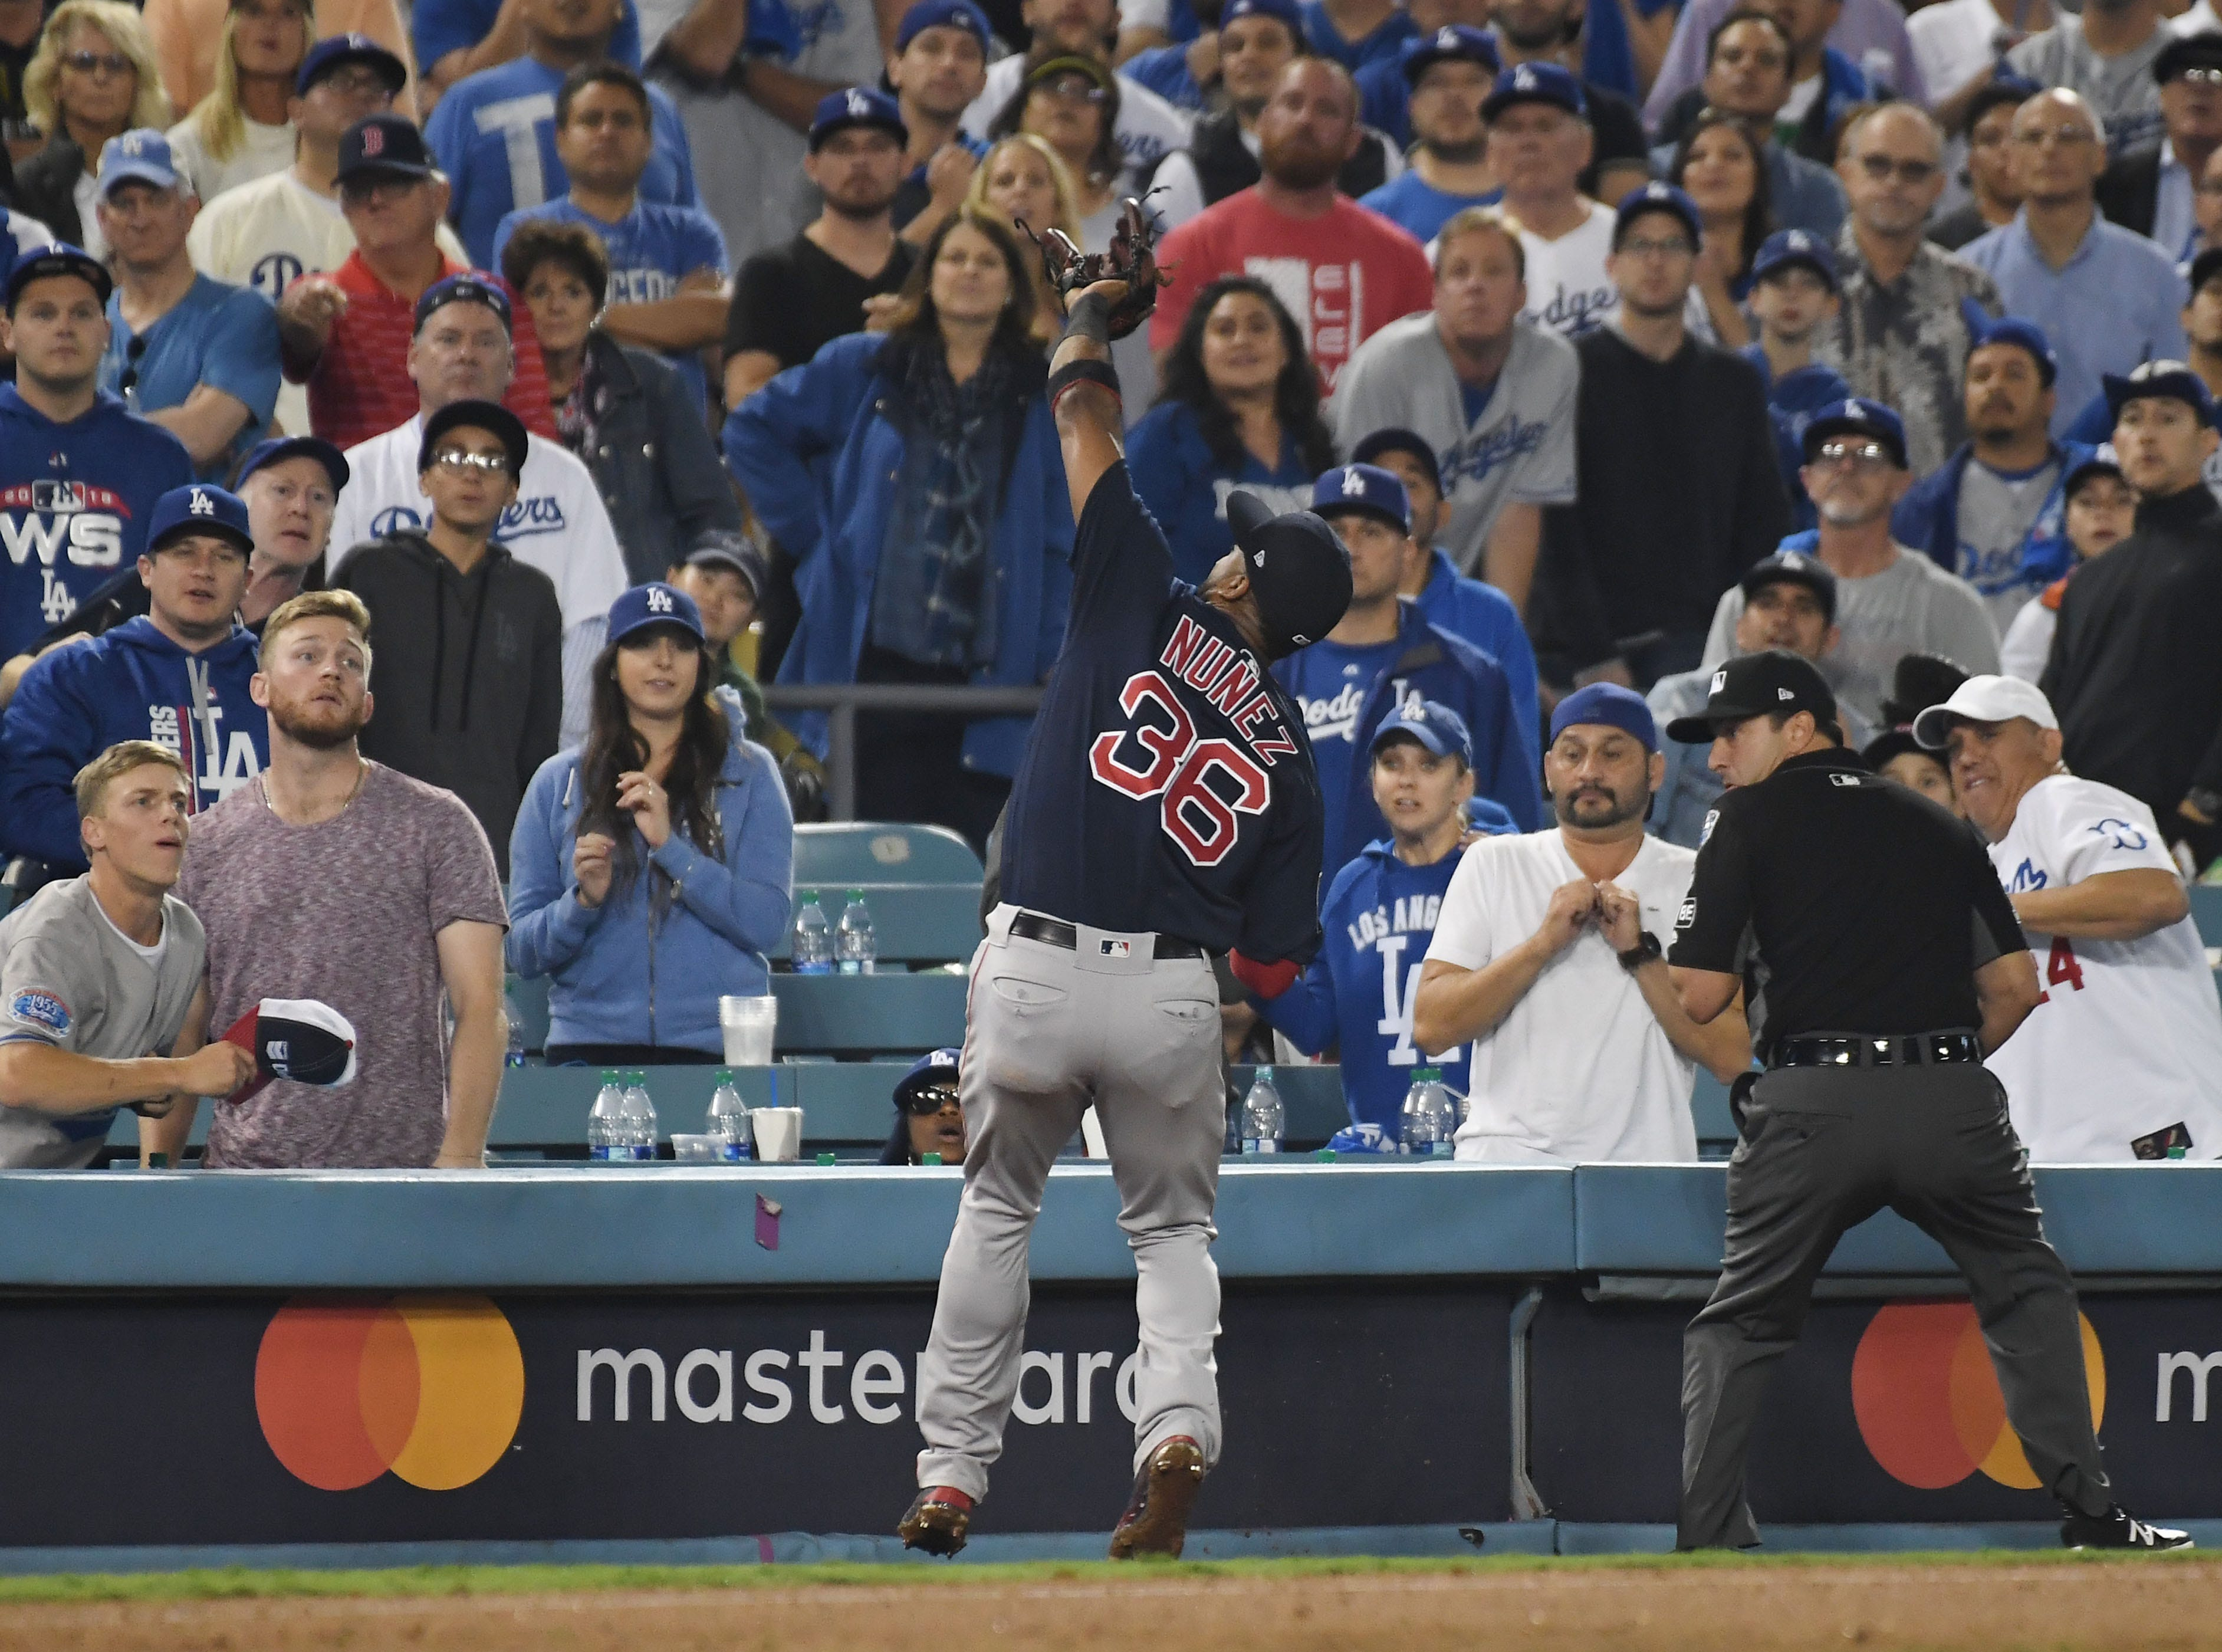 Game 3 at Dodger Stadium: Eduardo Nunez catches a foul ball in the 13th inning.